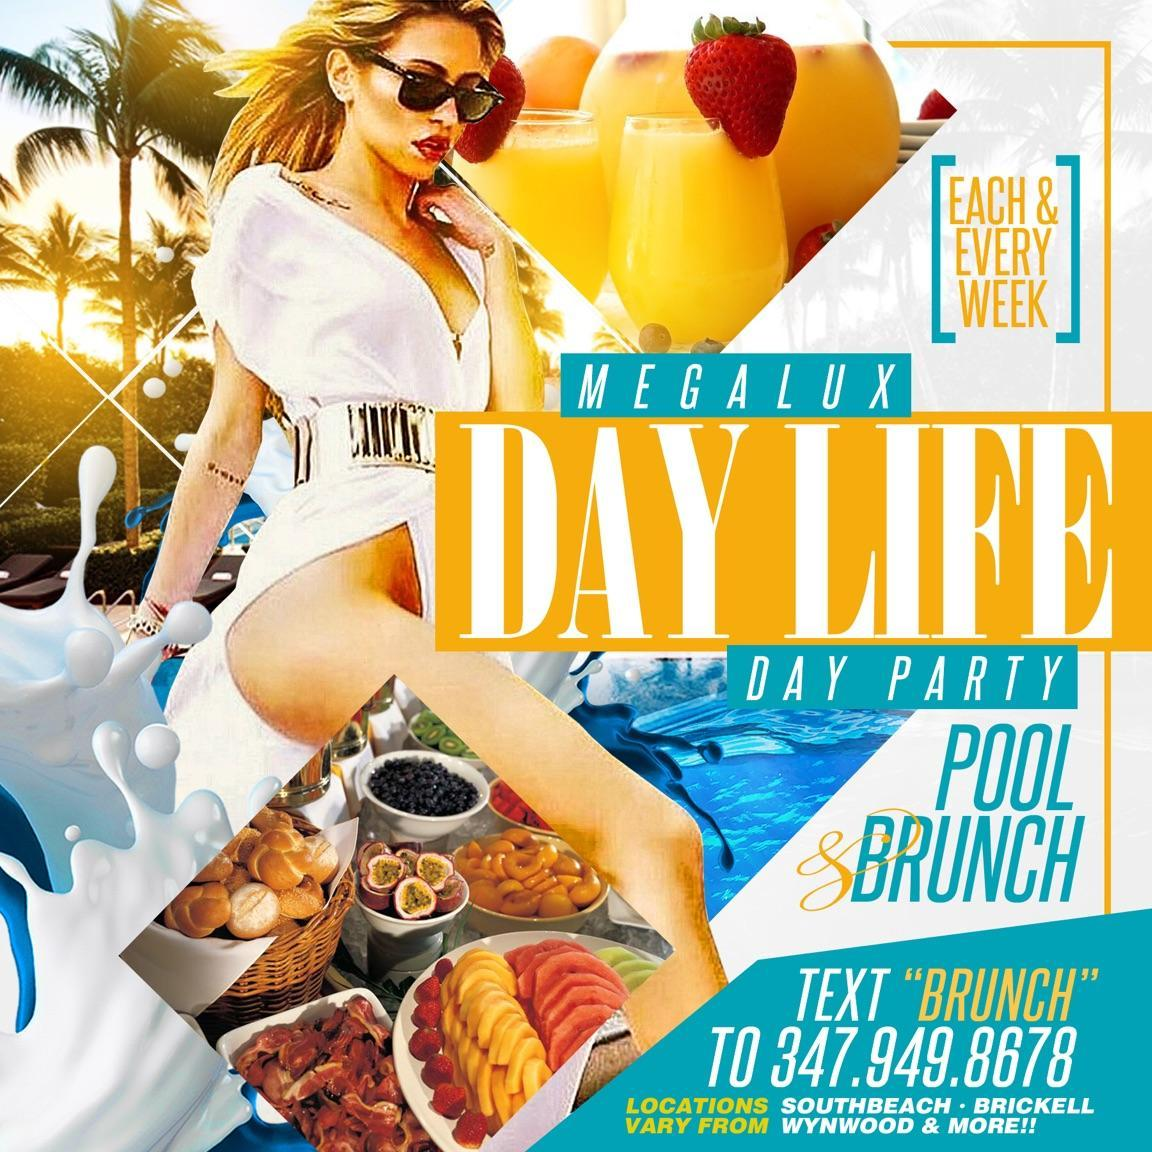 South Beach Brunch and Pool Party. South Beach Brunch and Pool Party